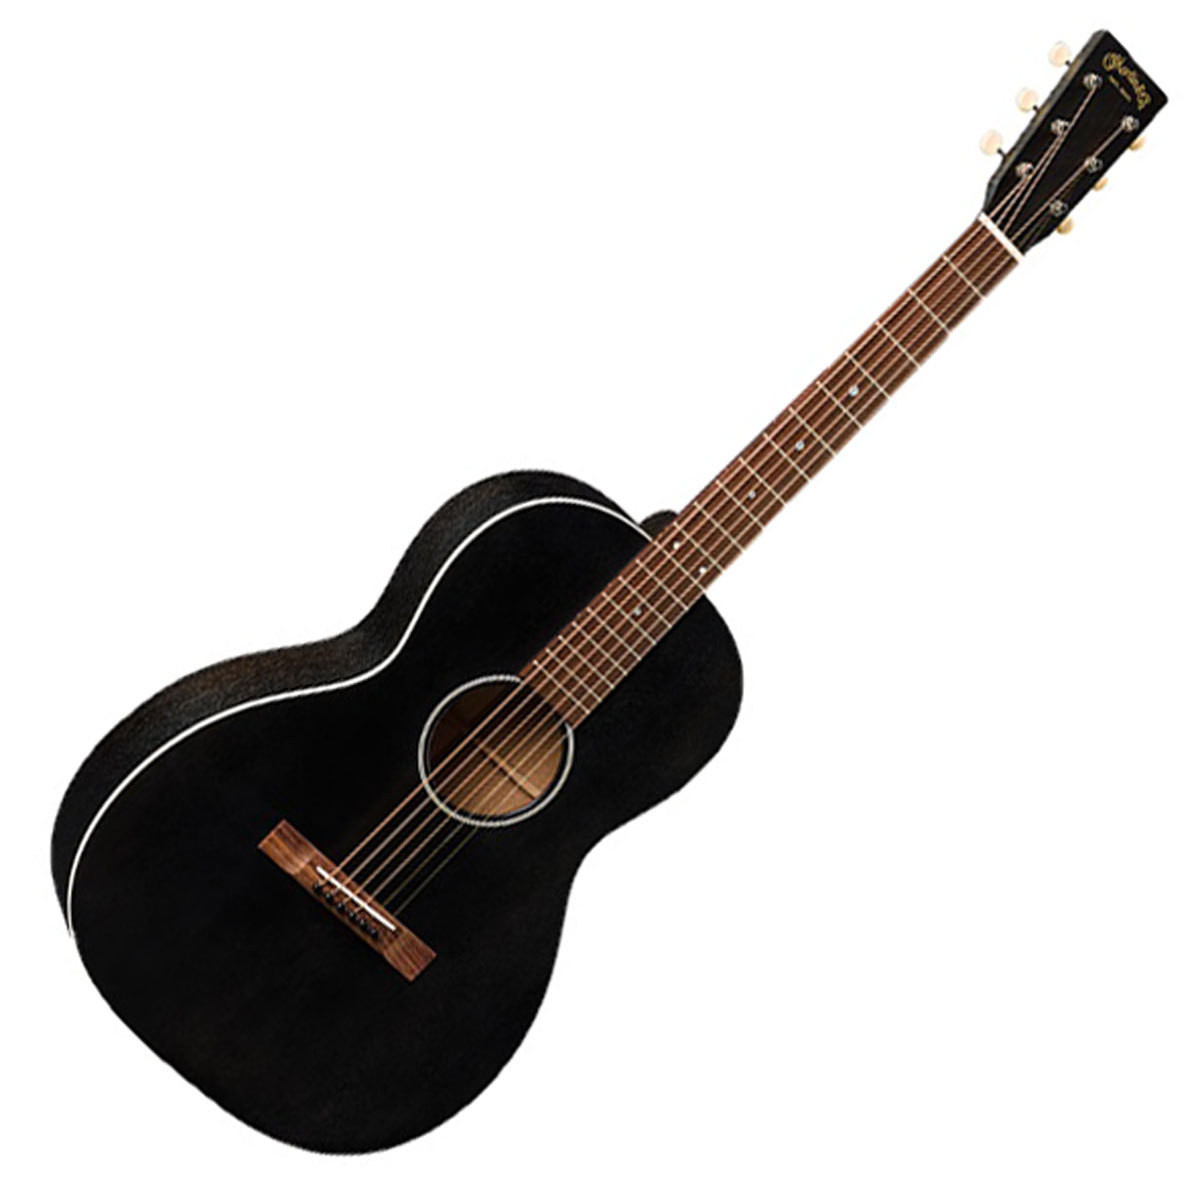 Click to view product details and reviews for Martin 00 17s Acoustic Guitar Black Smoke.